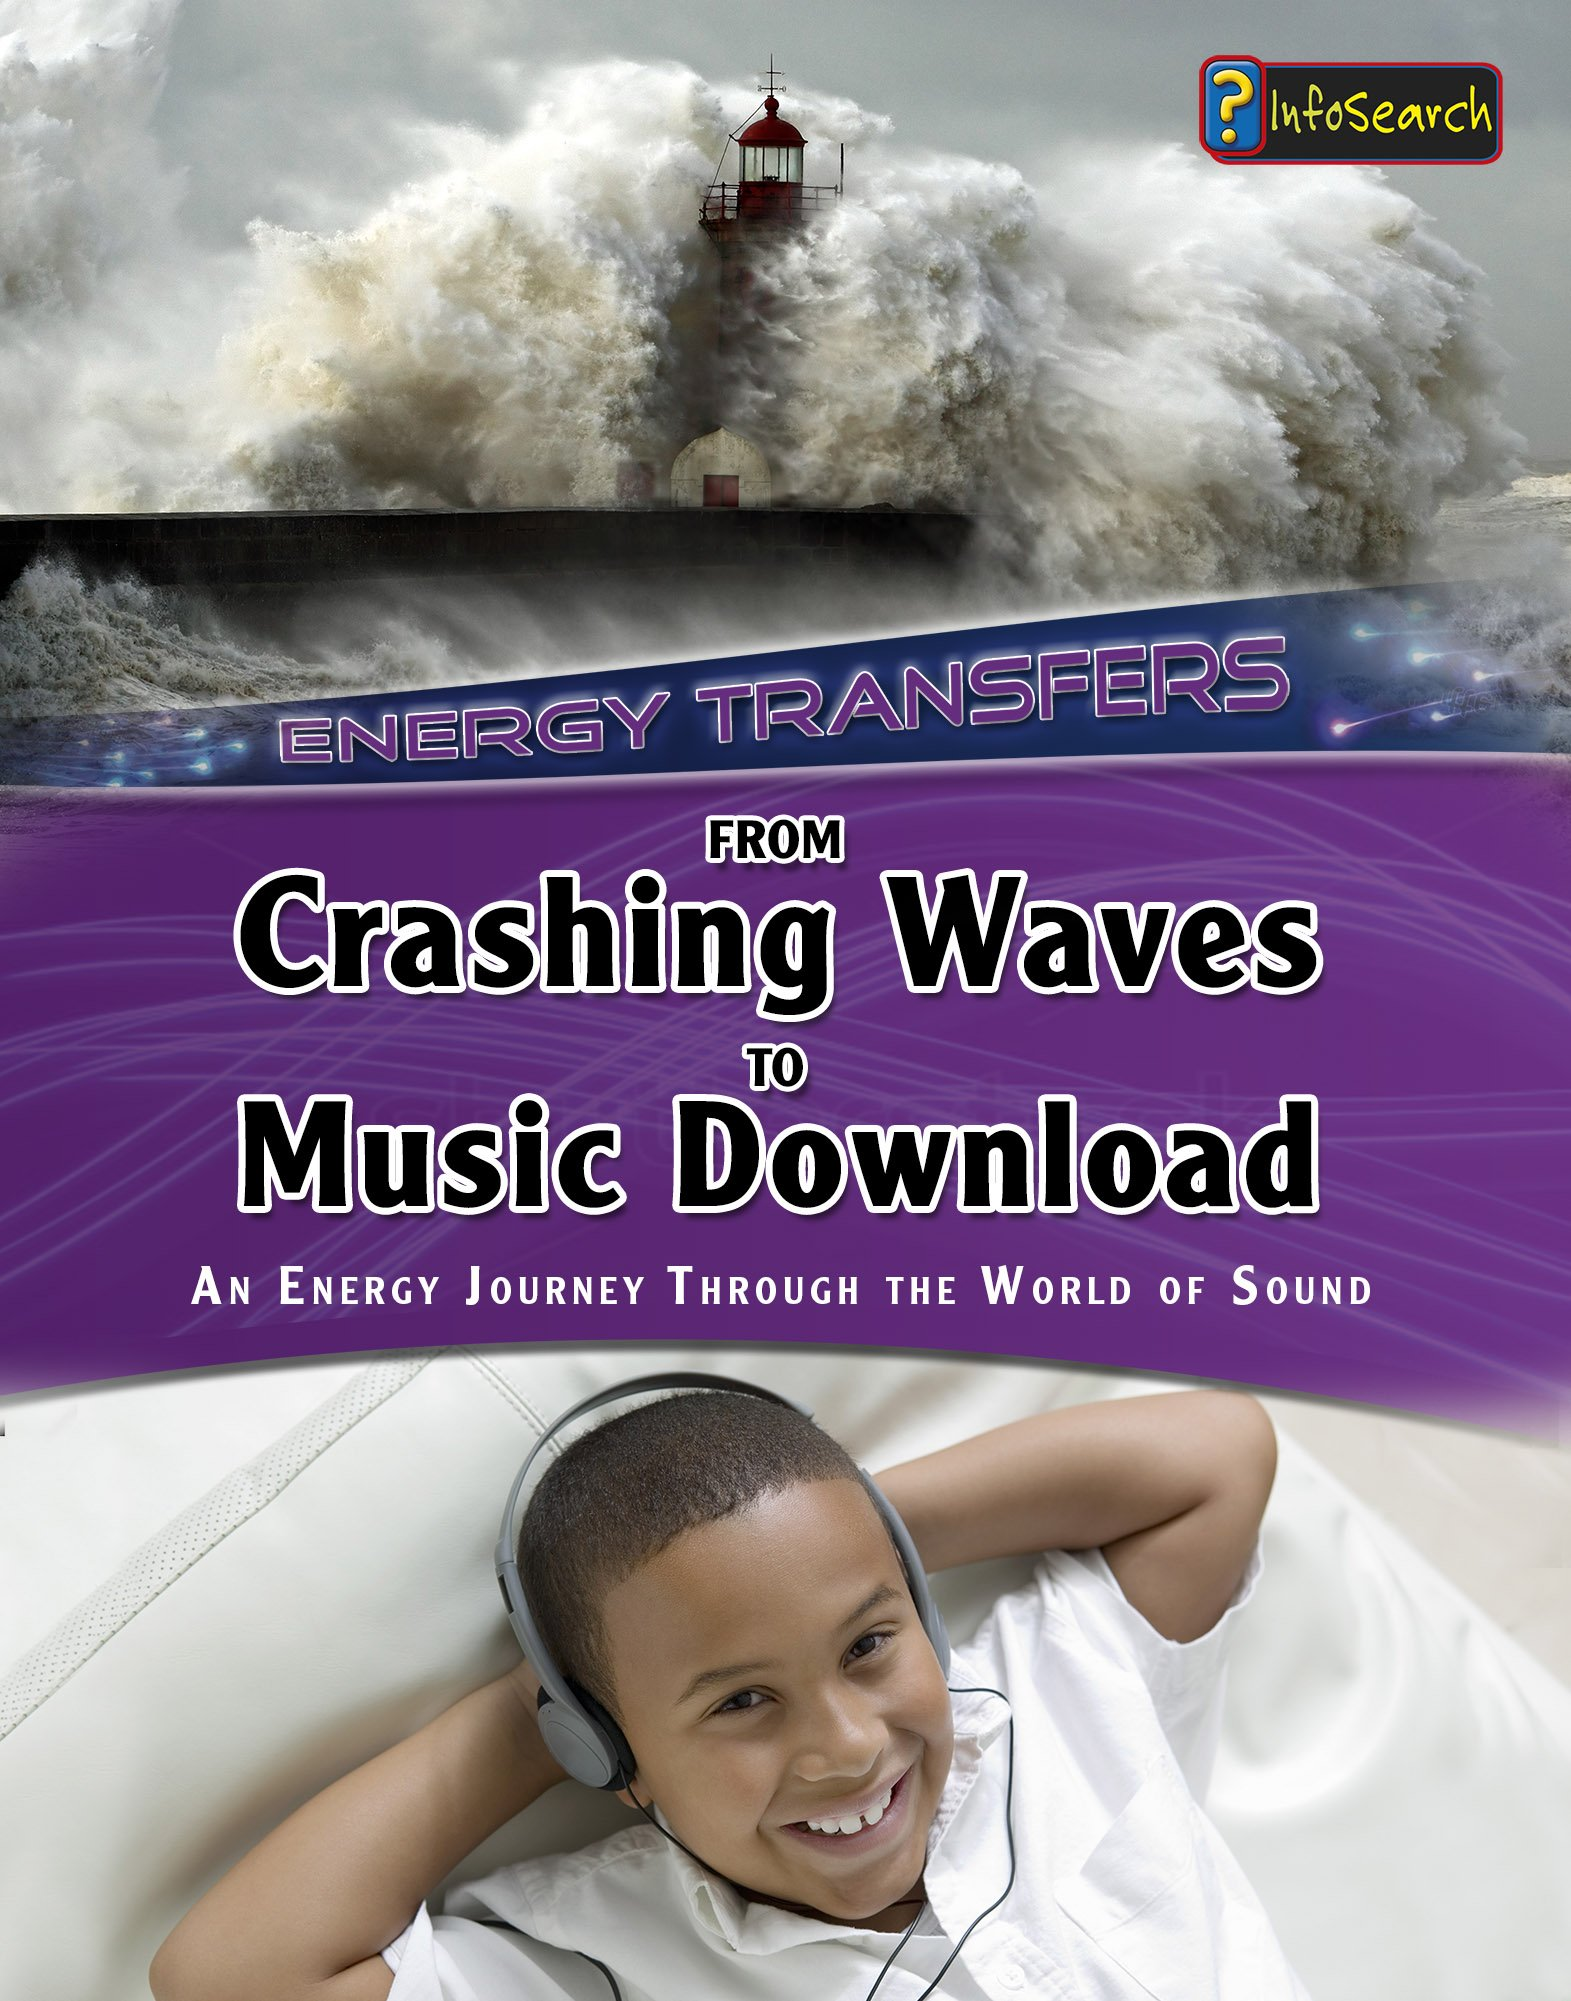 From Crashing Waves to Music Download: An energy journey through the world of sound (Energy Transfers) ebook